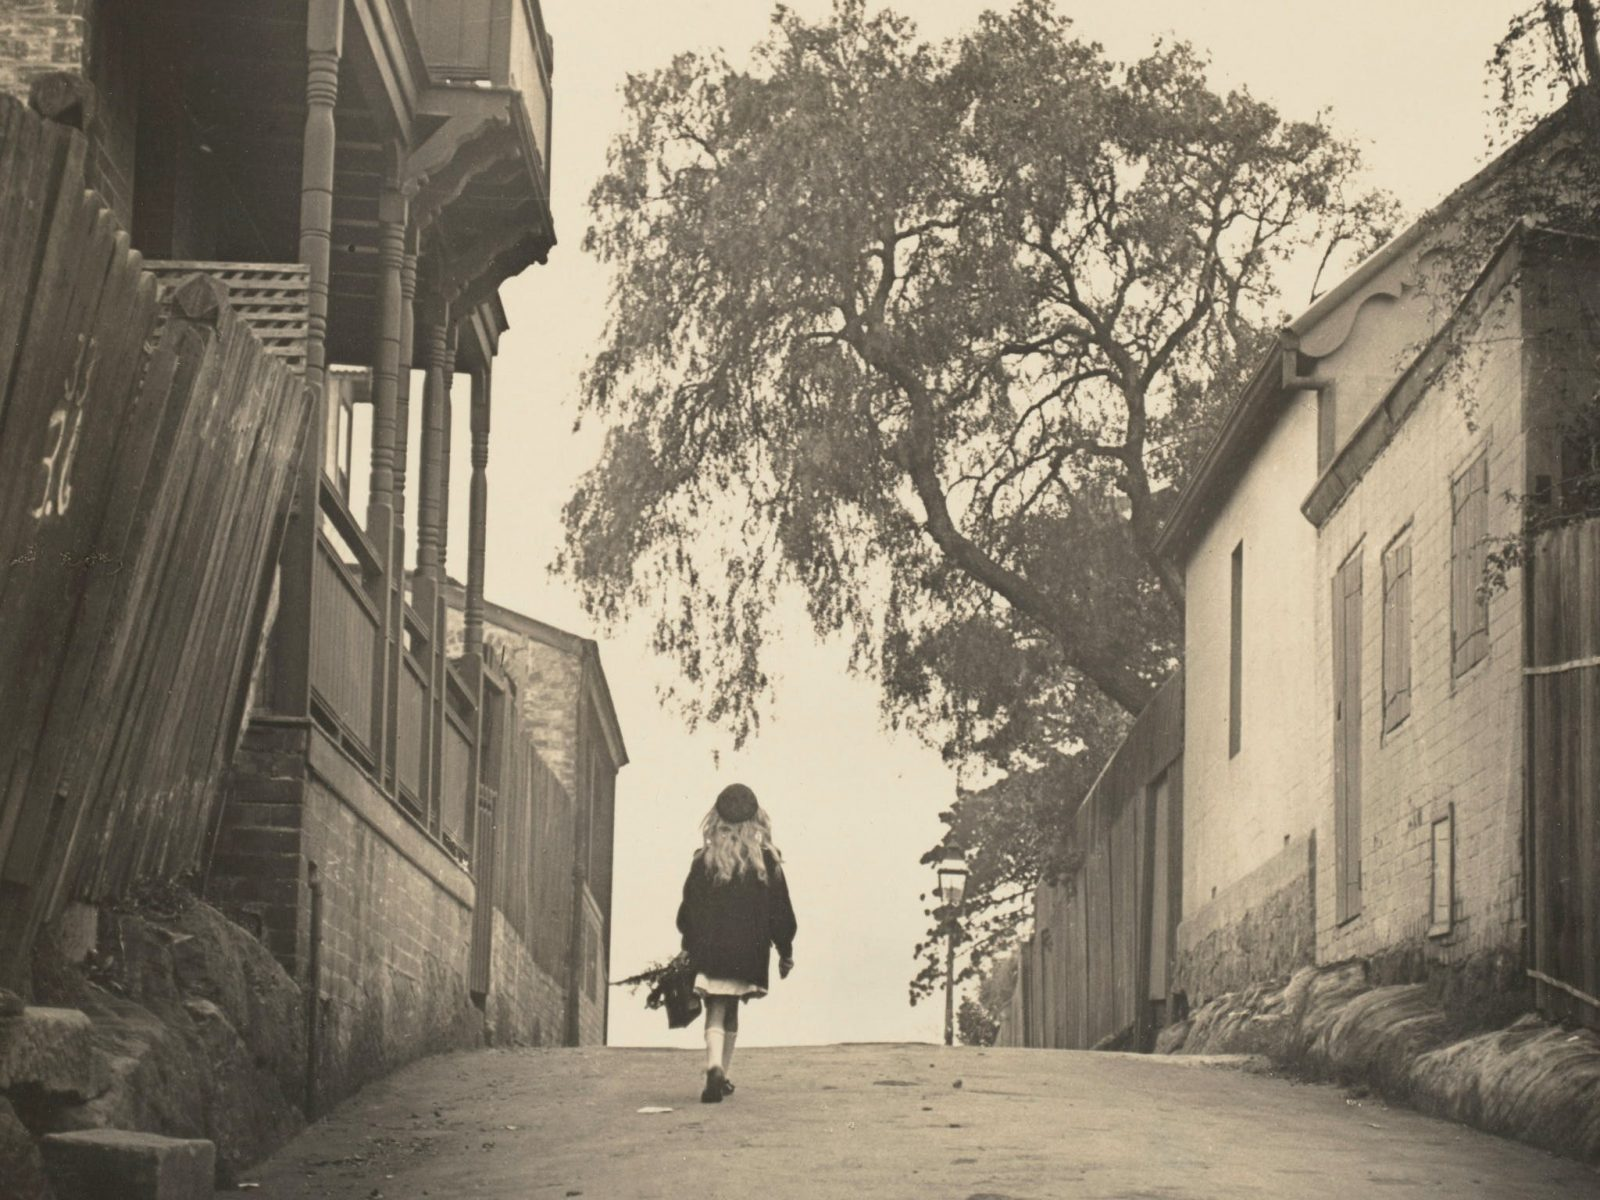 Young girl walking down street in 1910